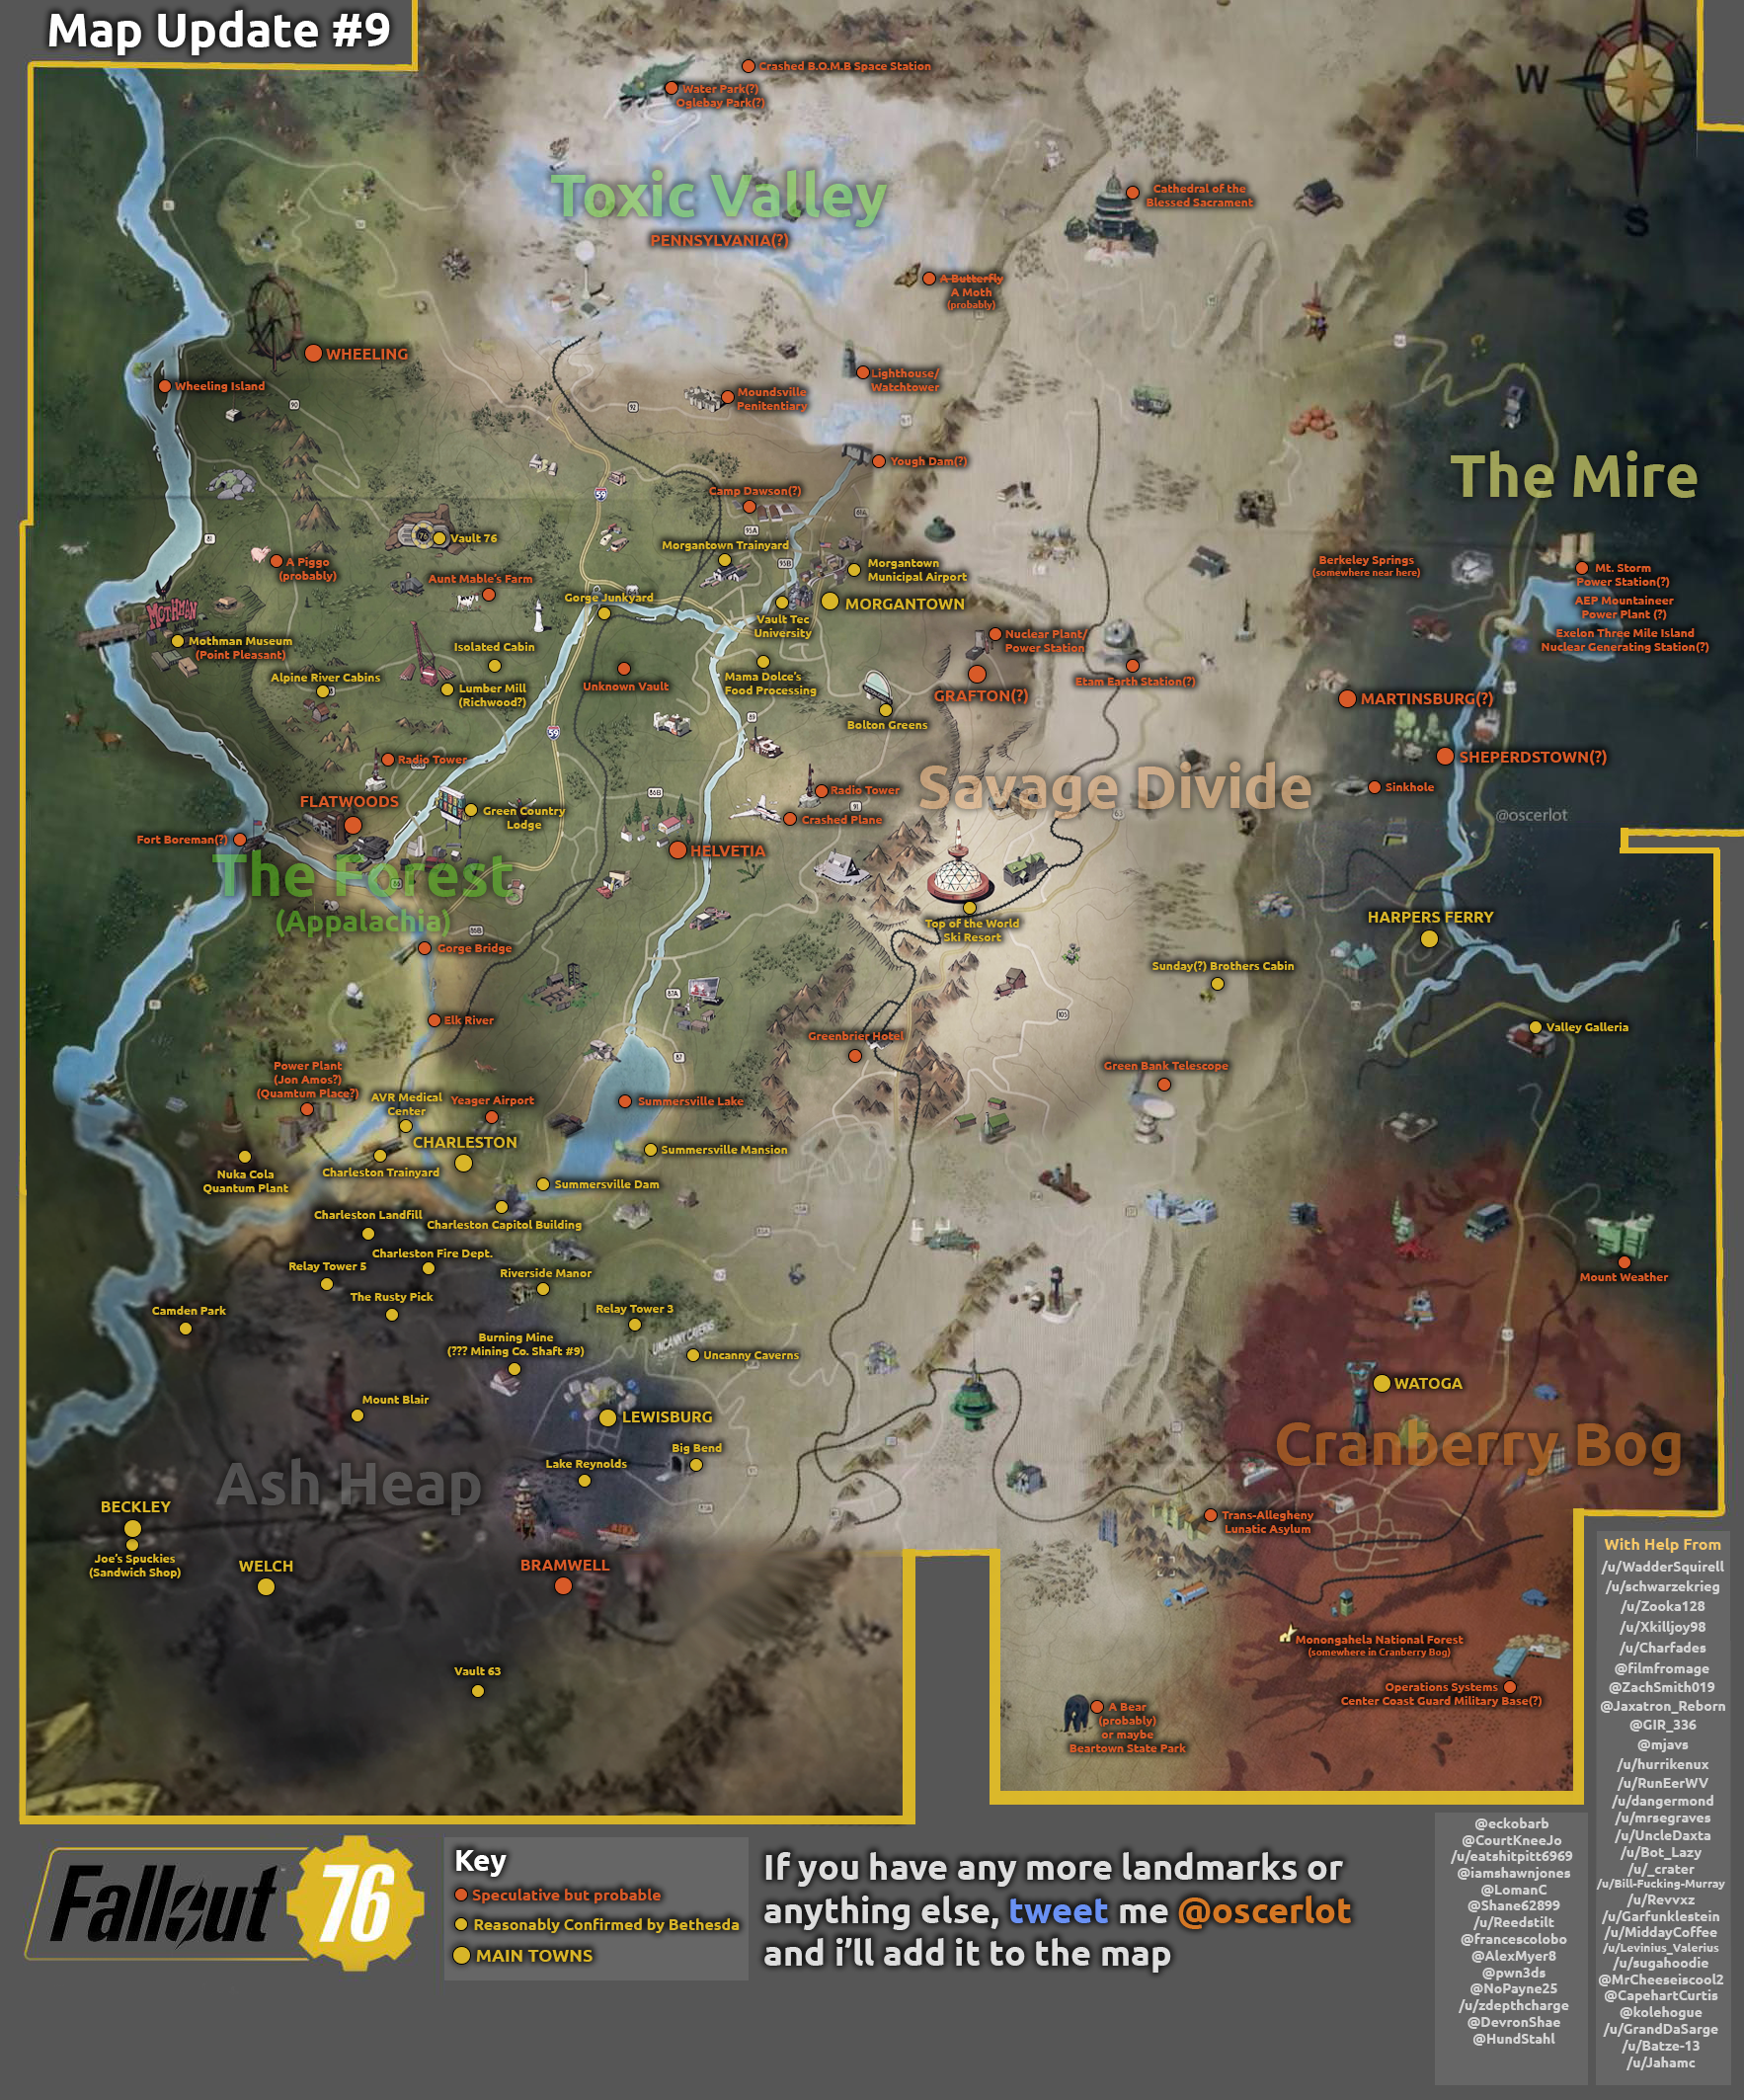 Fallout76Map_Update9.png